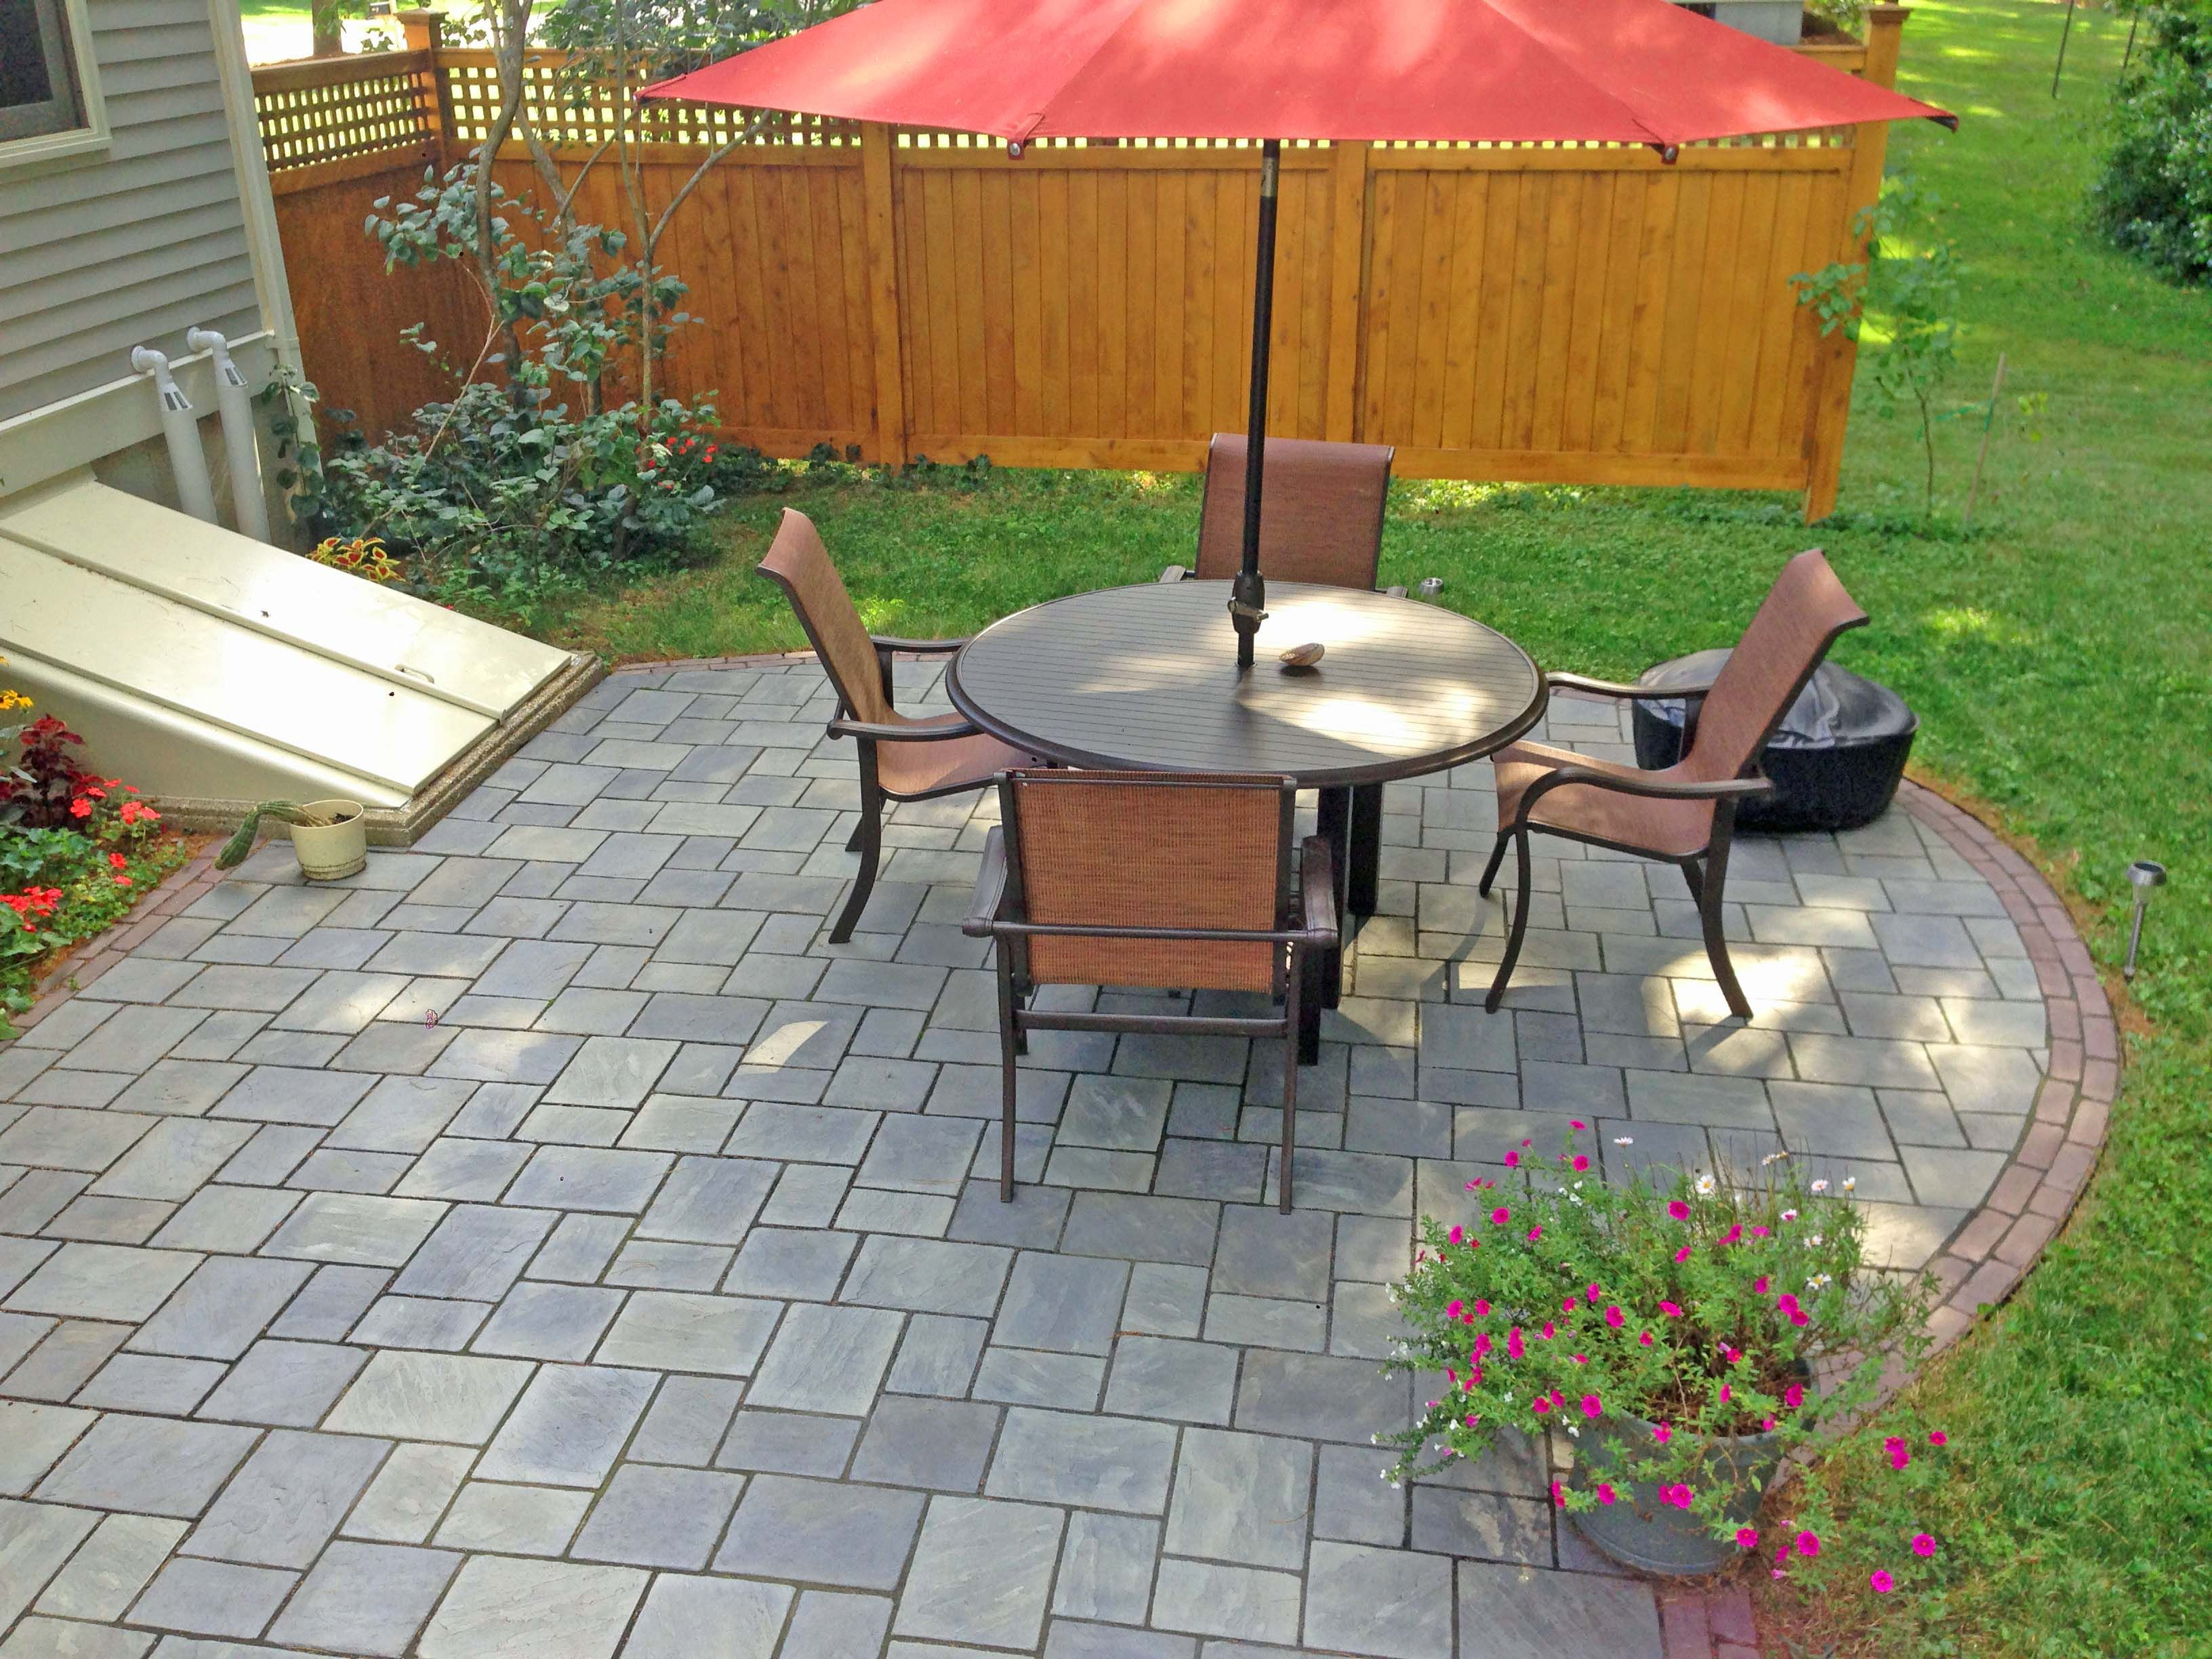 Unilock Patio with Richcliff pavers and Copthorne Accent ... on Unilock Patio Ideas id=79510